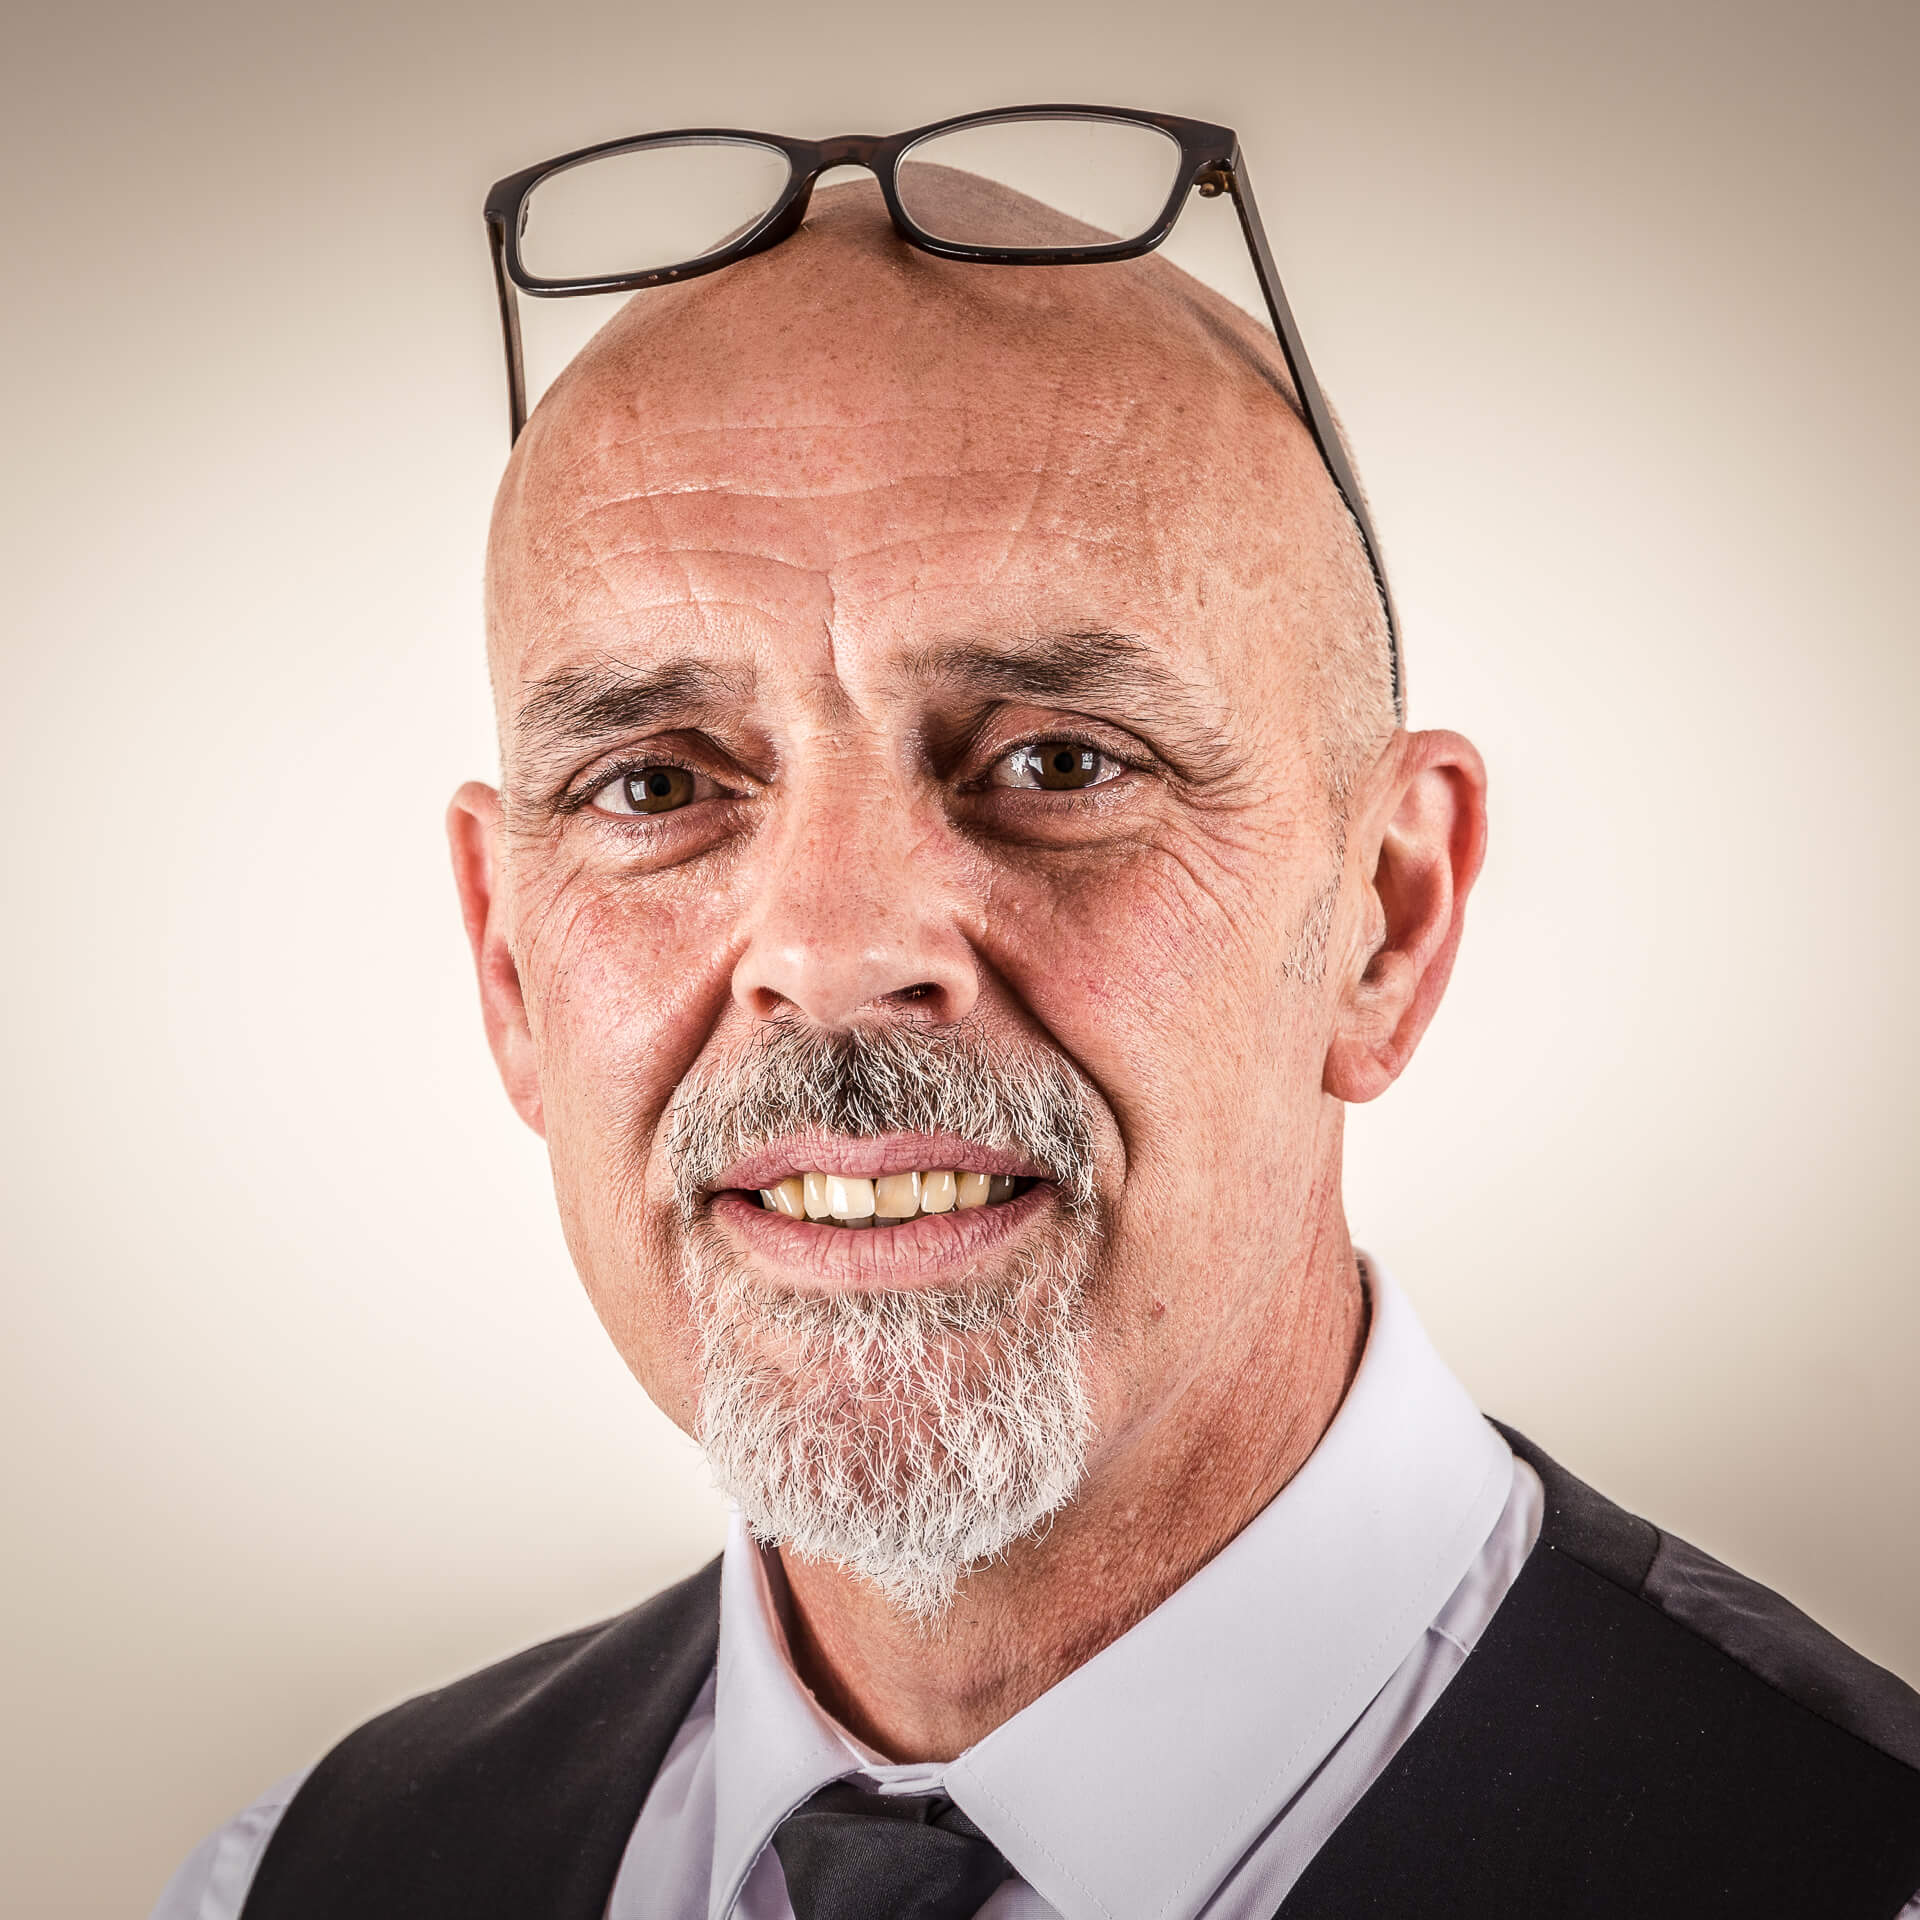 A colour head & shoulders shot of John. John used to work at Funeral Directors. John, who sports a short goatee beard, is shown here in fairly standard (save sunglasses on the top of the head) office attire for a Funeral Director, a crisp white shirt, a black tie, and a black waistcoat.